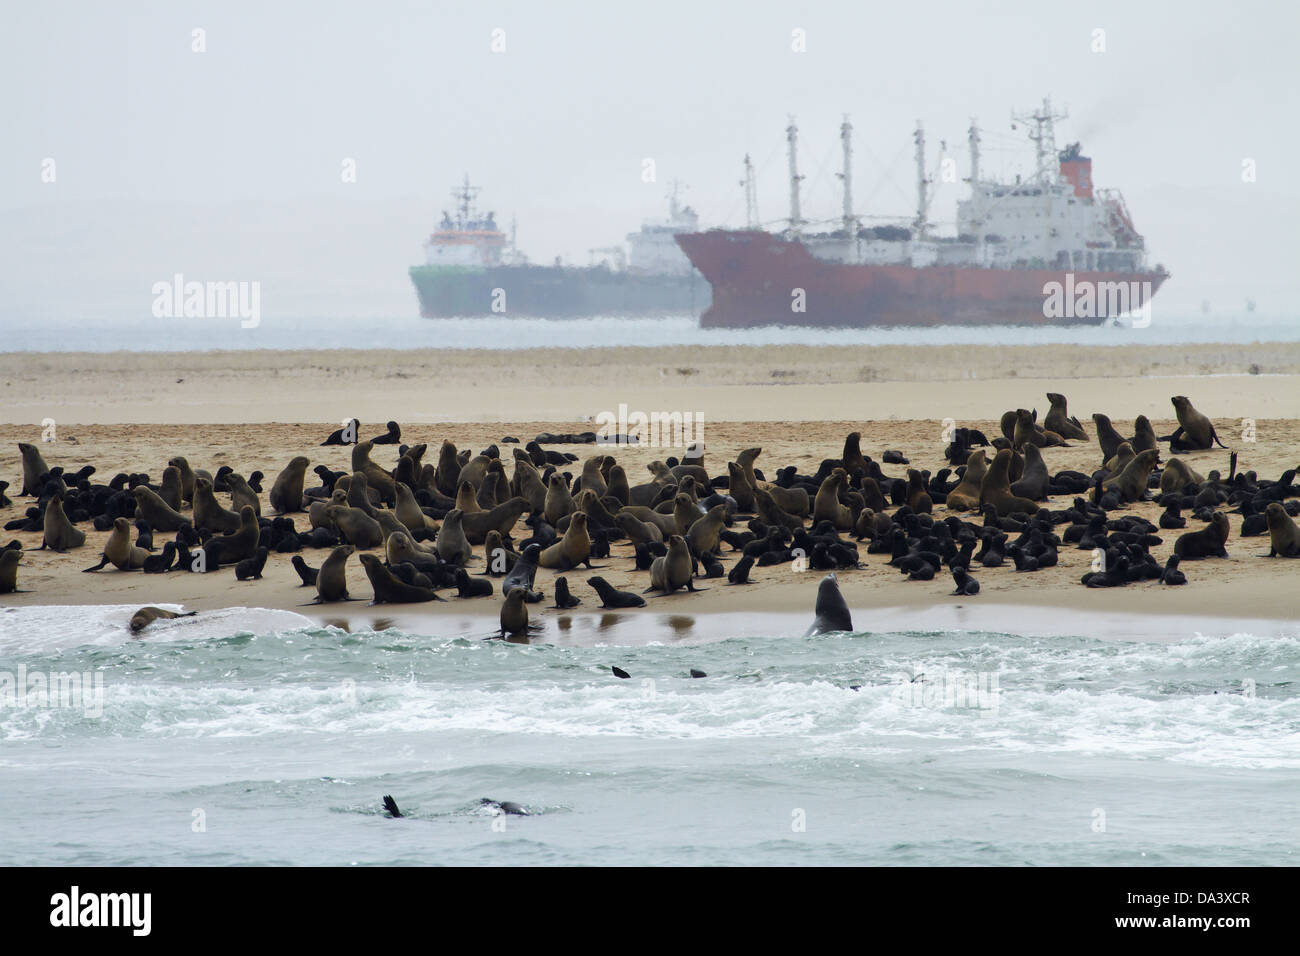 Cape Fur Seal colony (Arctocephalus pusillus) at Pelican Point, and ships anchored in Walvis Bay, Namibia, Africa - Stock Image